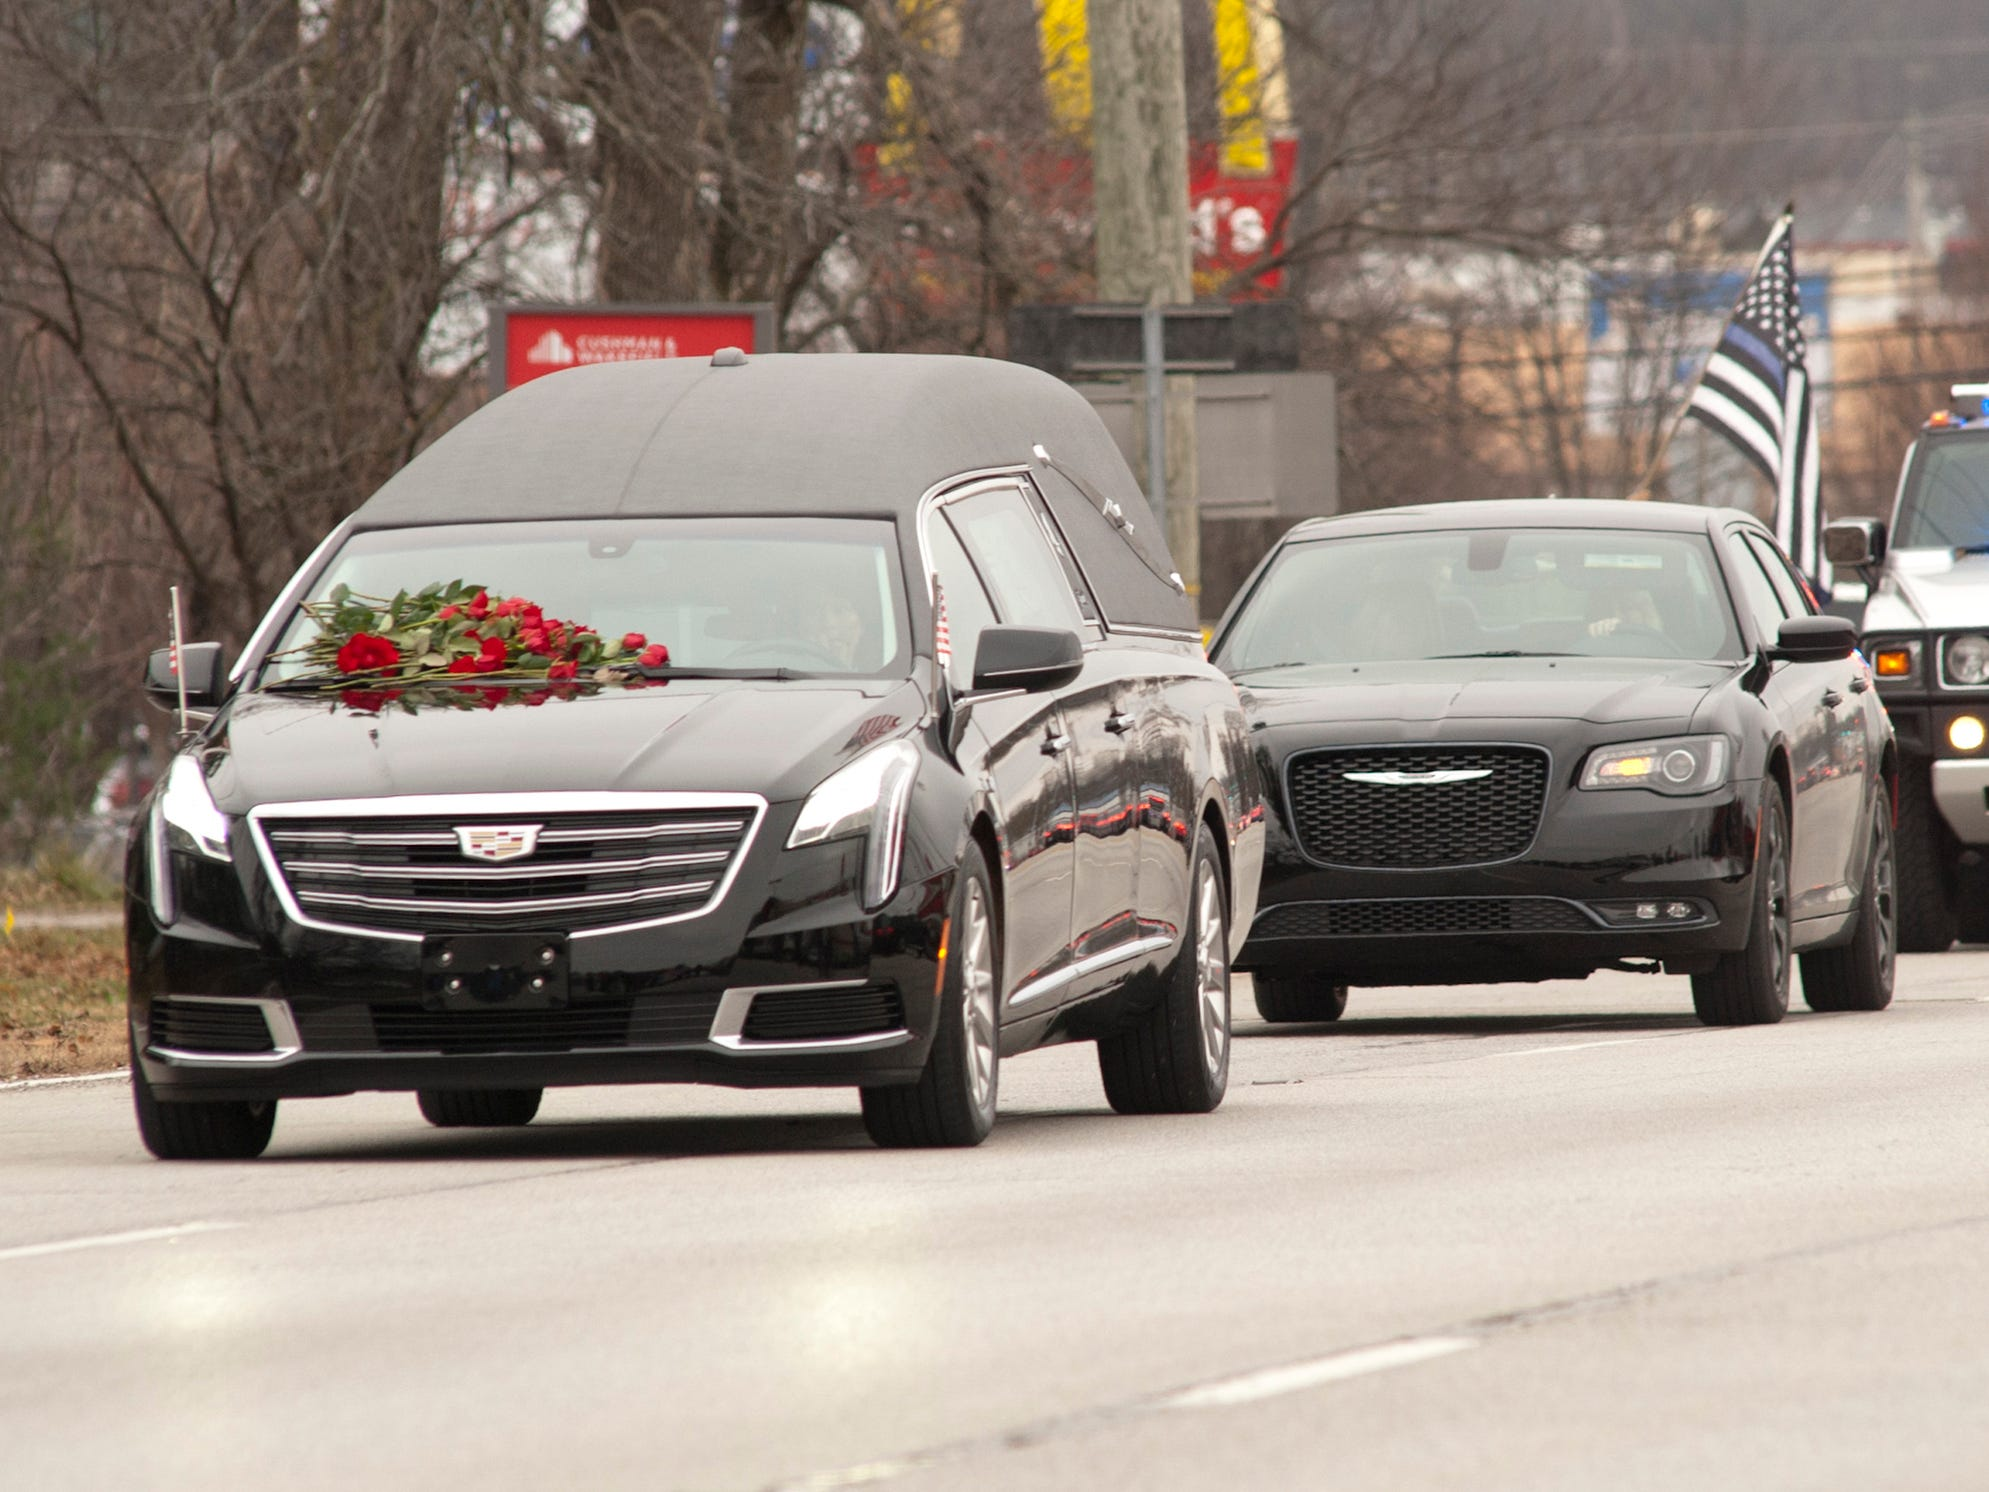 The procession of LMPD Detective Deidre Mengedoht from S. 3rd Street to the Resthaven Funeral Home on Bardstown Road.